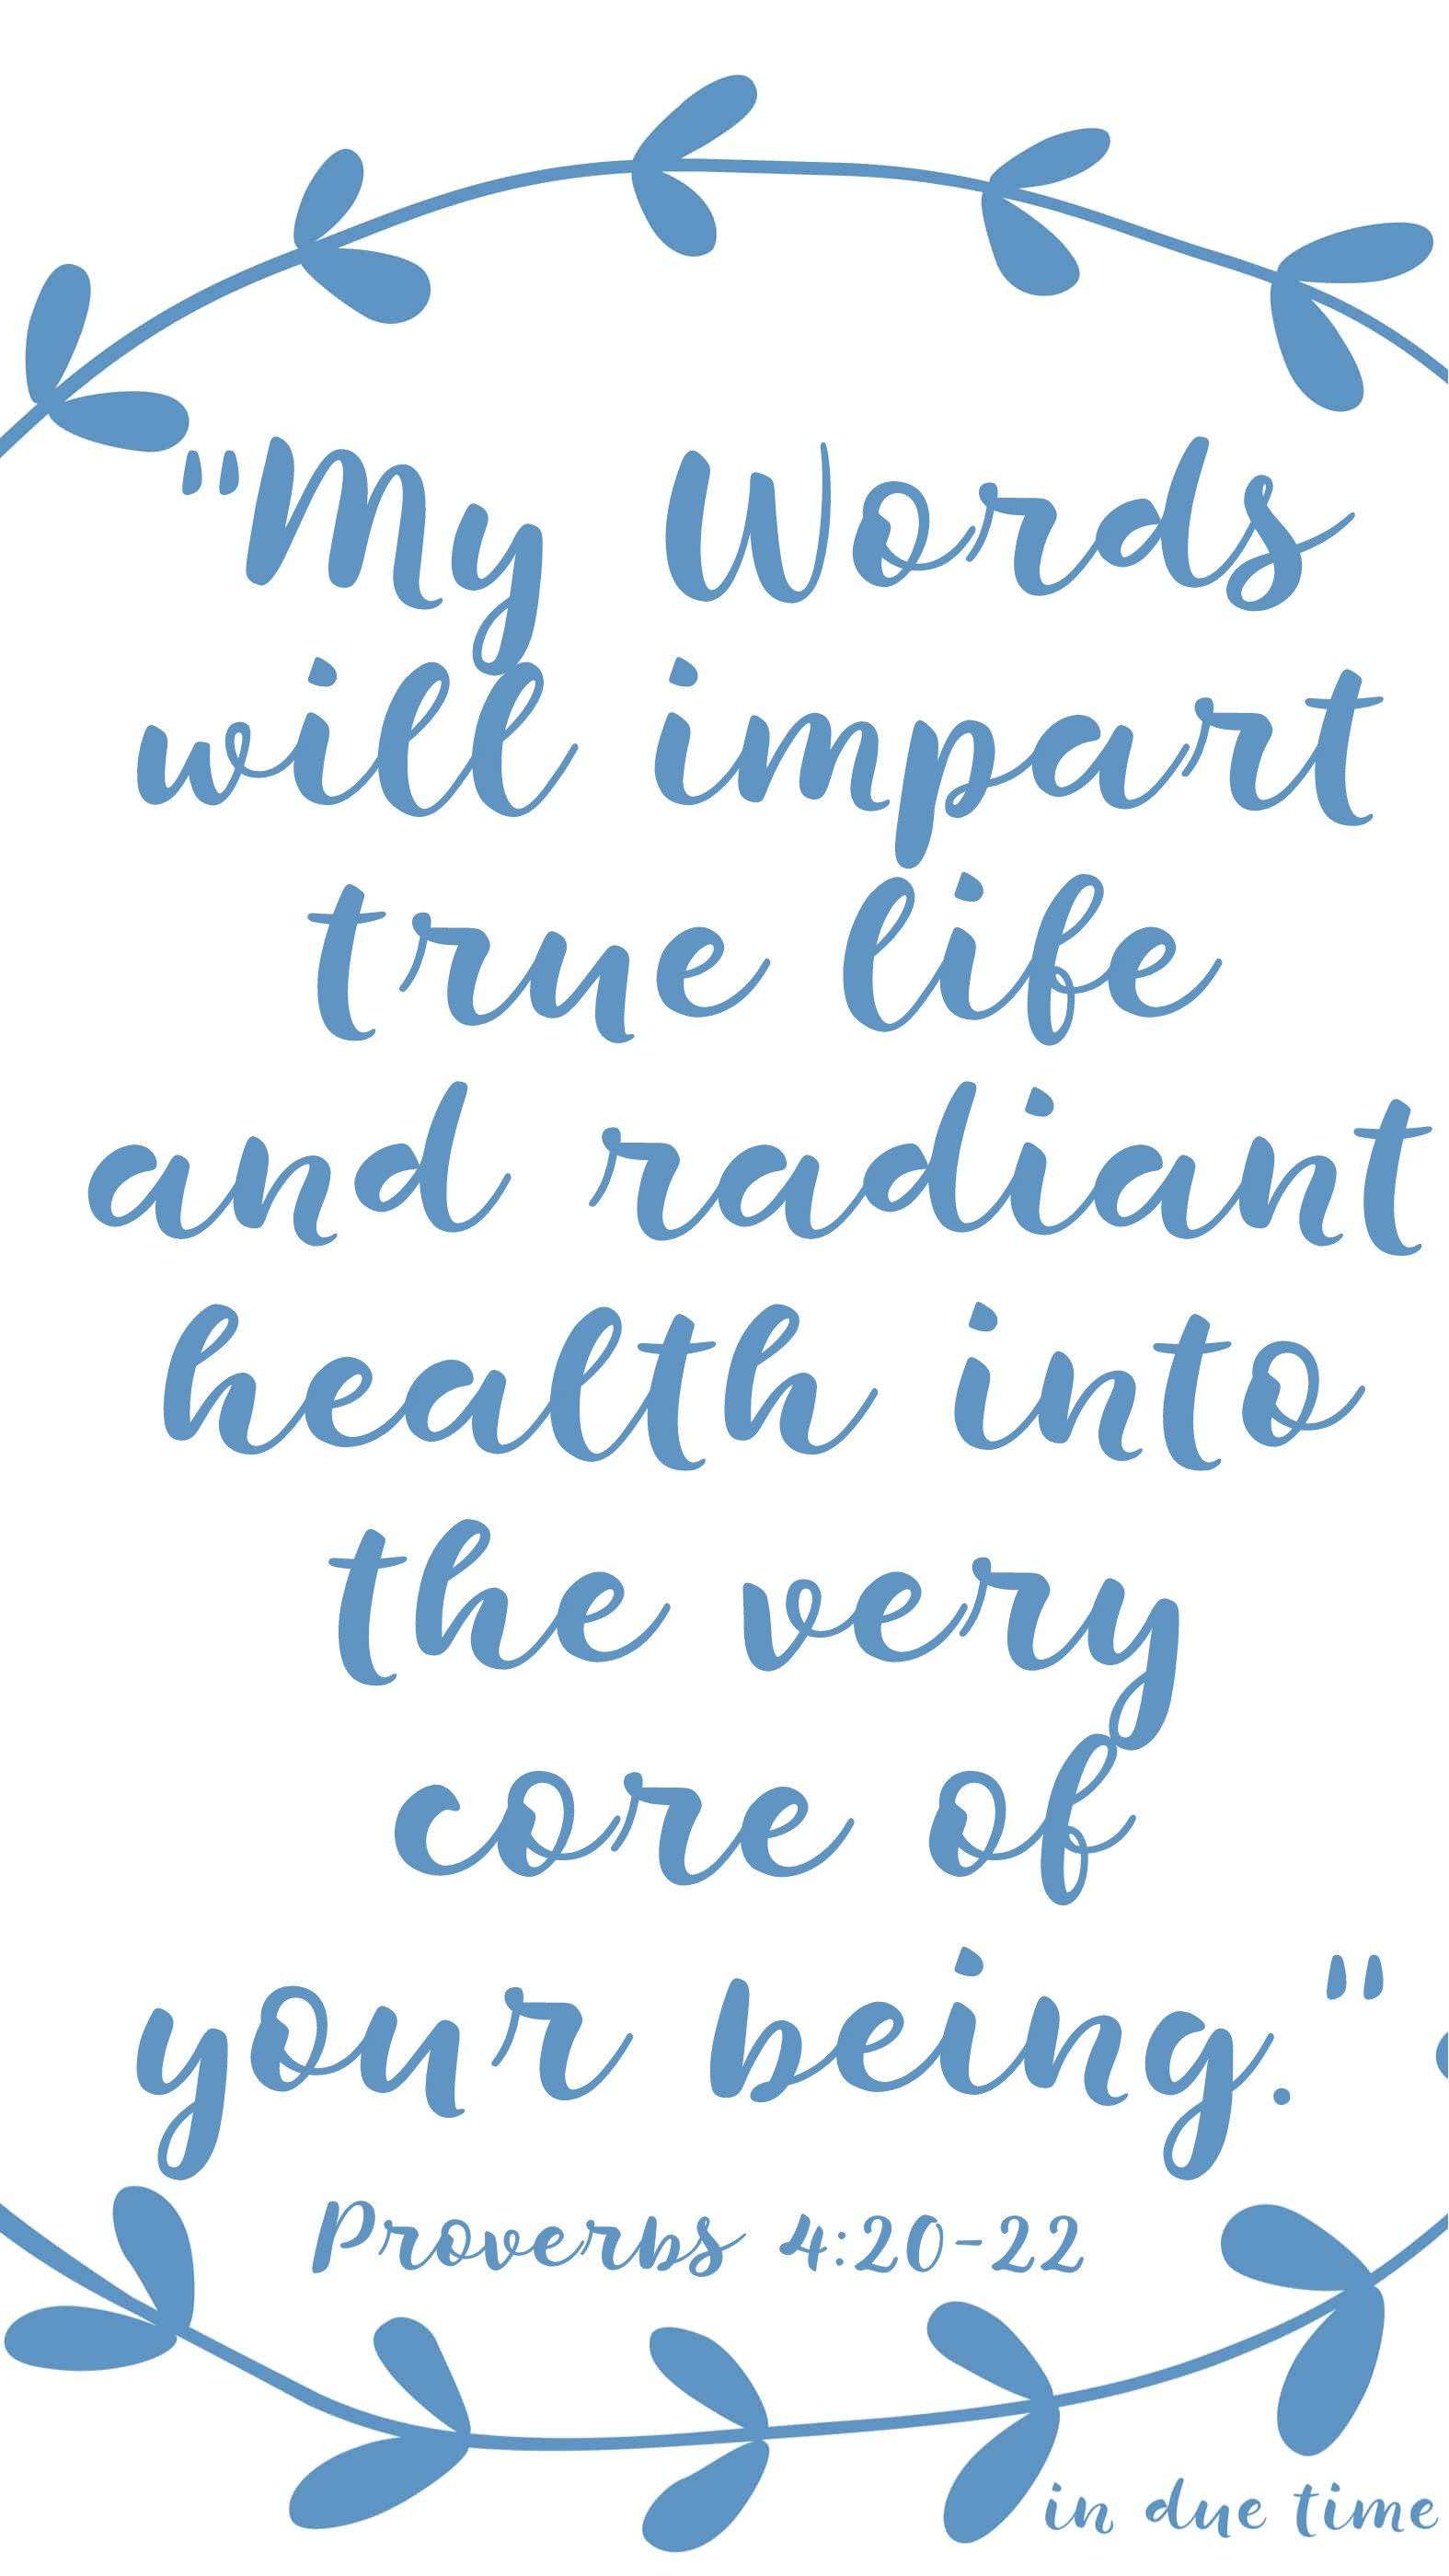 they will impart true life and radiant health Proverbs 4